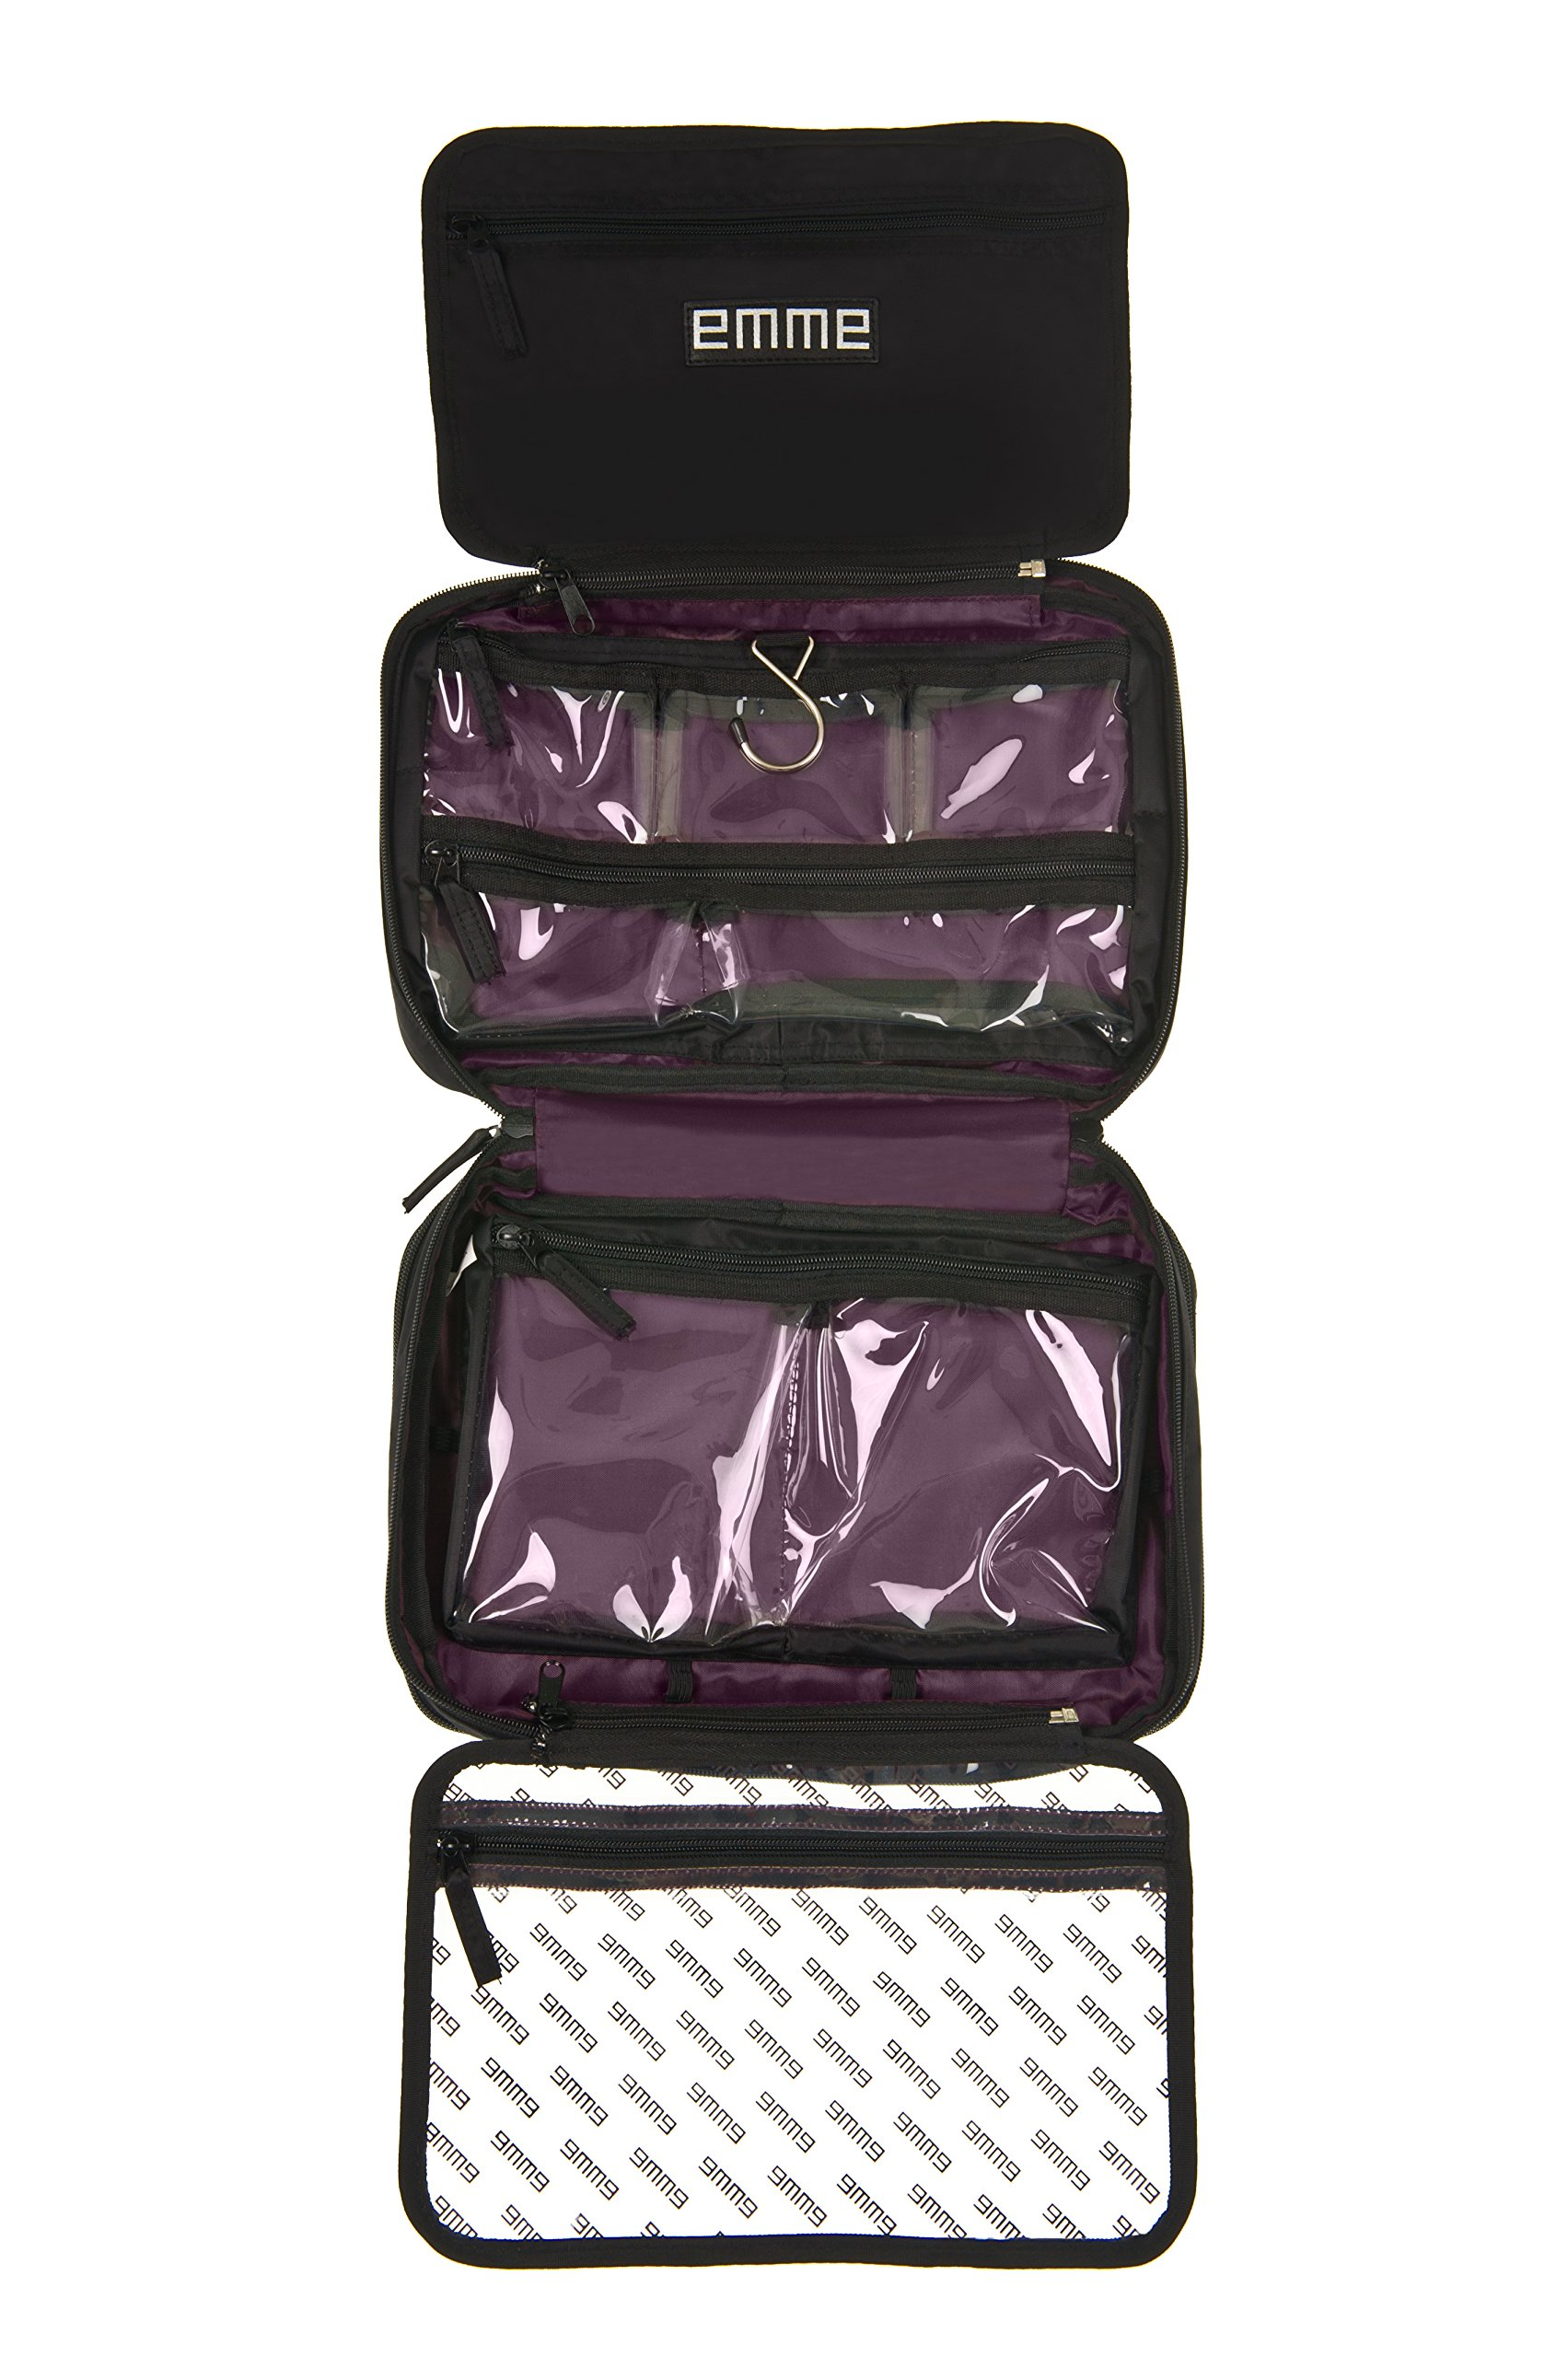 EMME Original - Hanging Compartmentalized Cosmetic and Toiletry Bag for Organized Travel